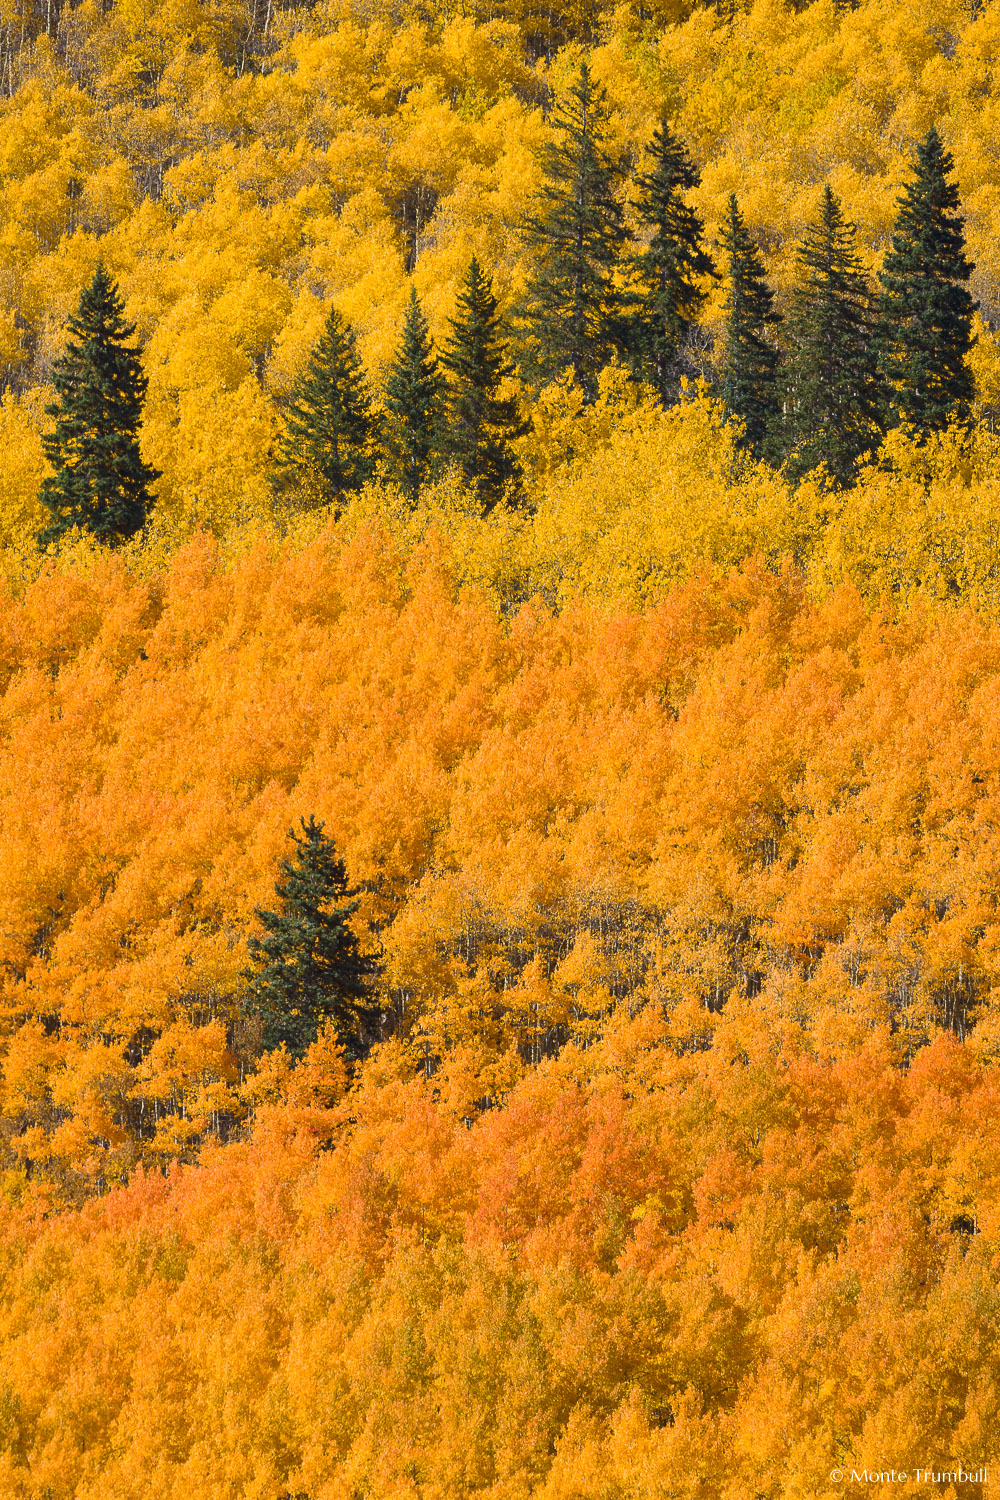 MT-20111003-144344-0035-Colorado-golden-orange-aspens.jpg